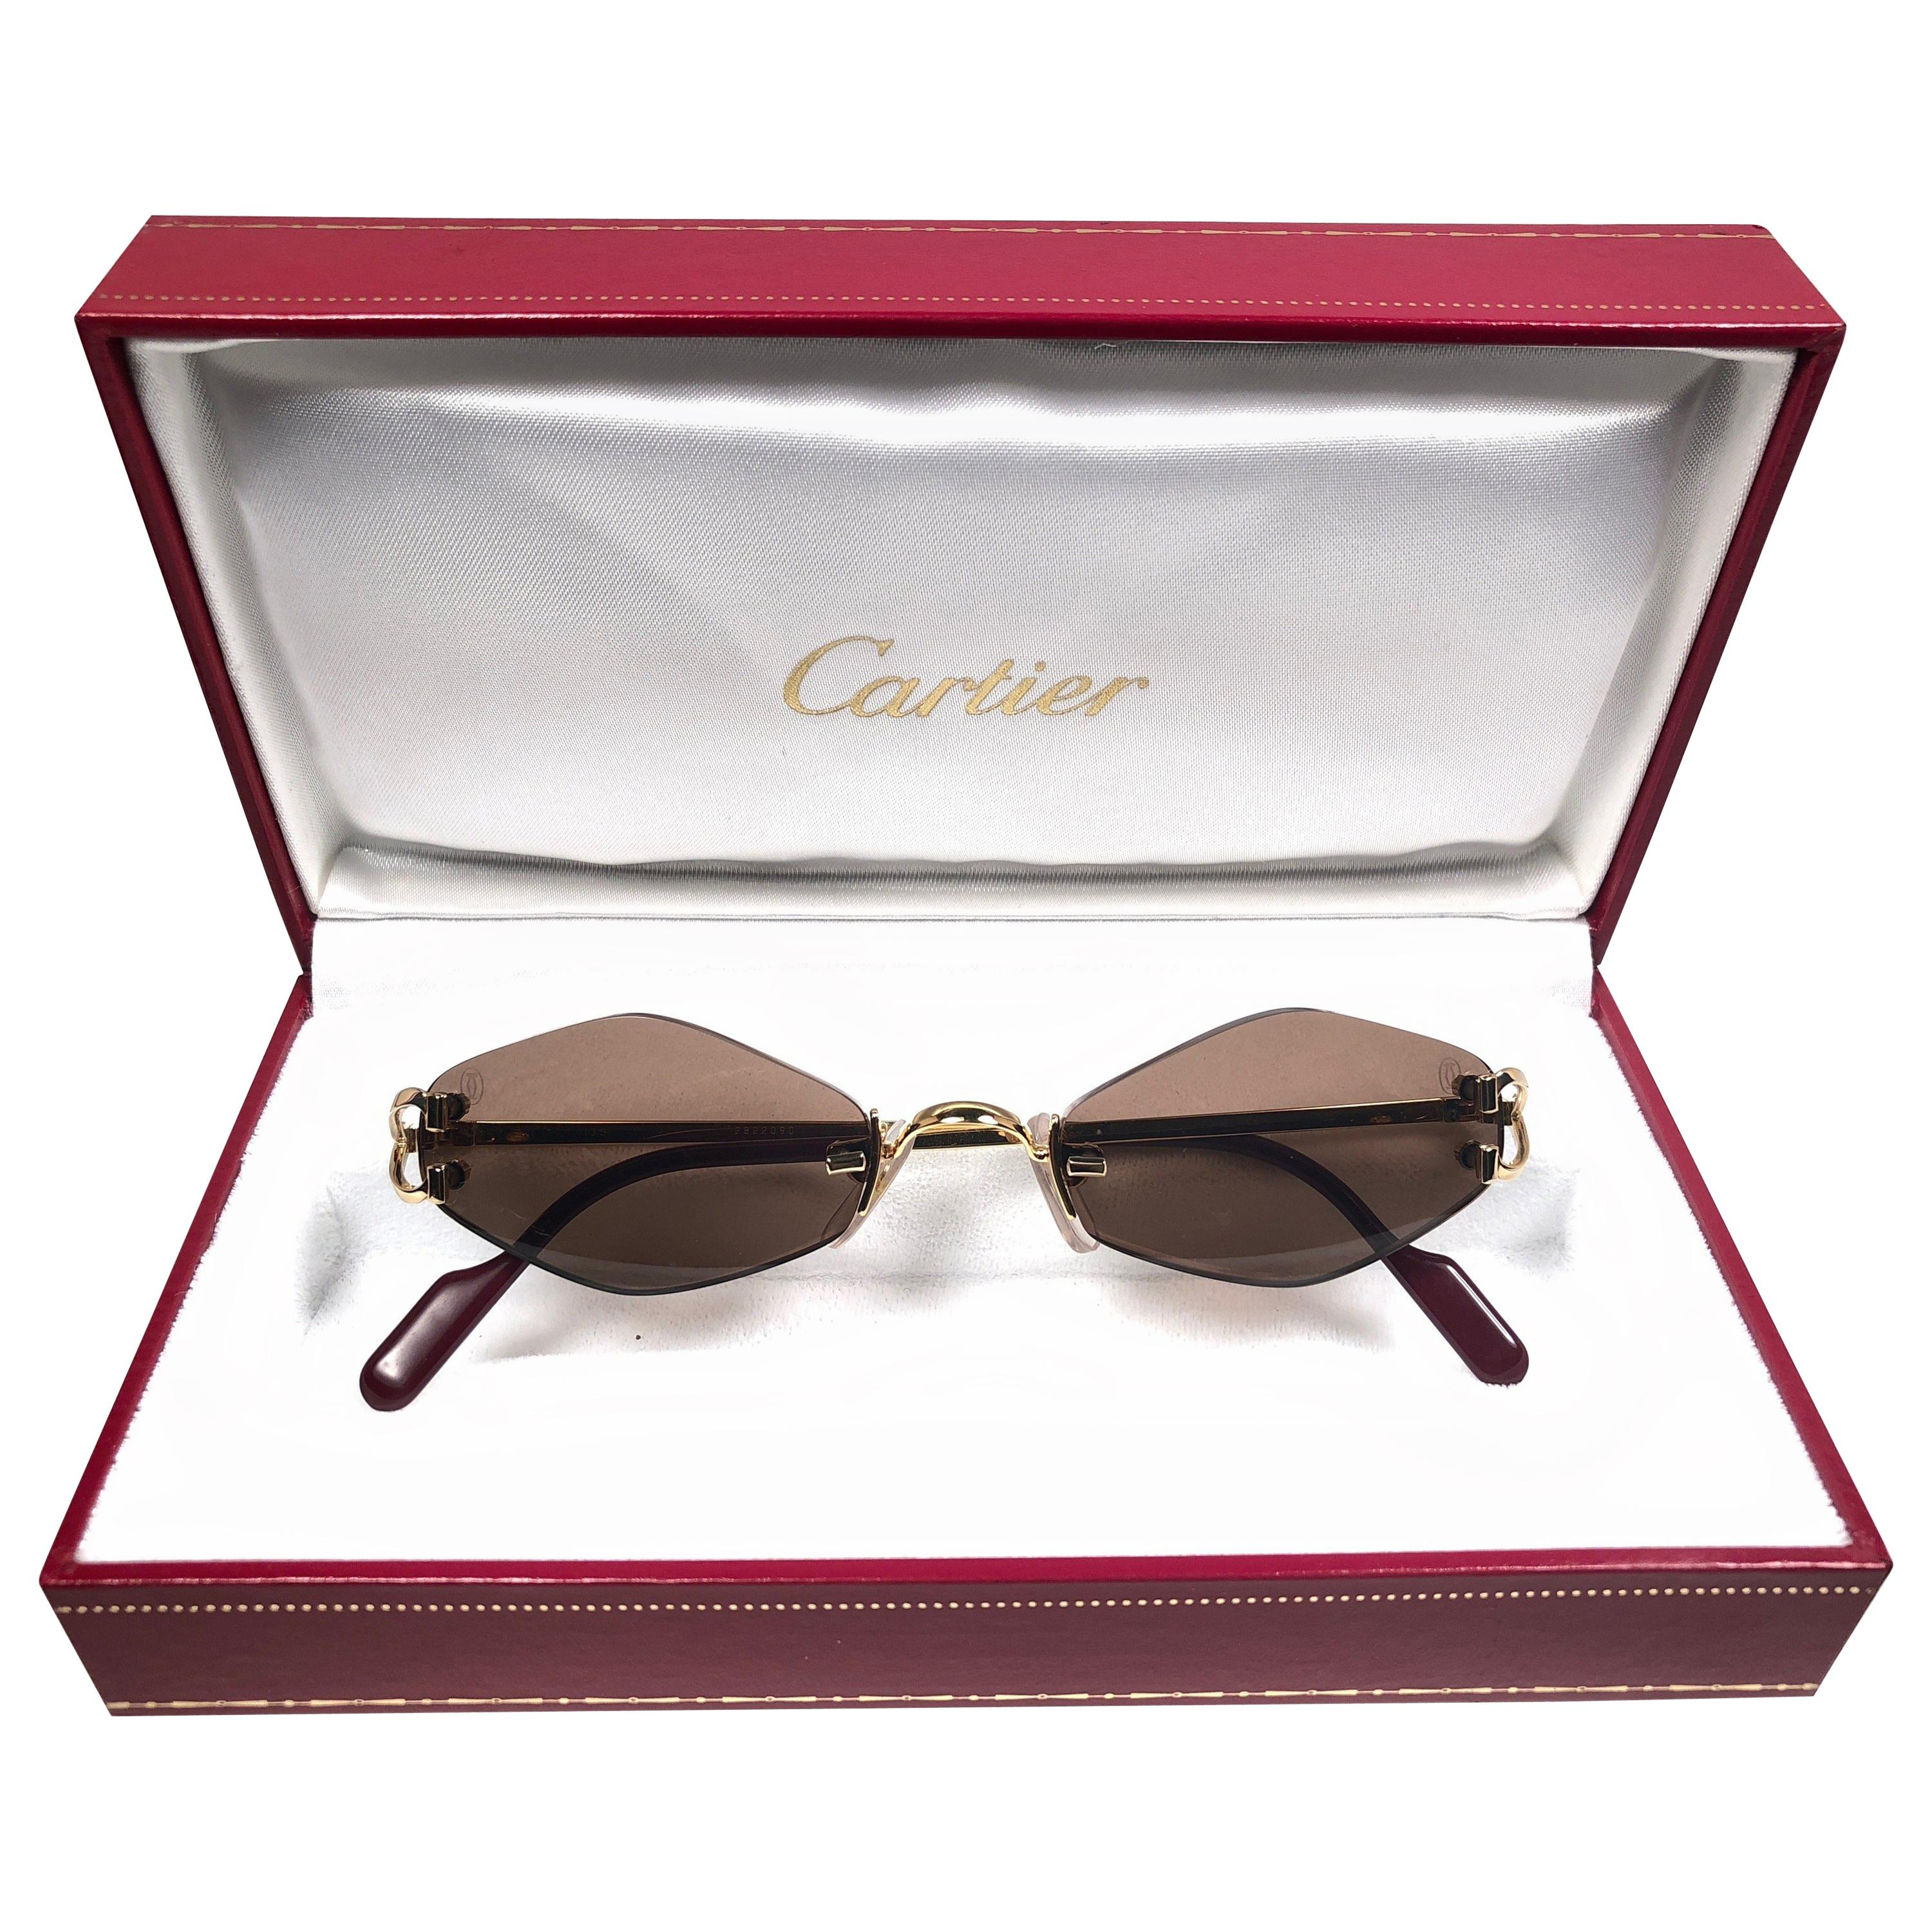 373fa88f1b96f Vintage Cartier Sunglasses - 156 For Sale at 1stdibs